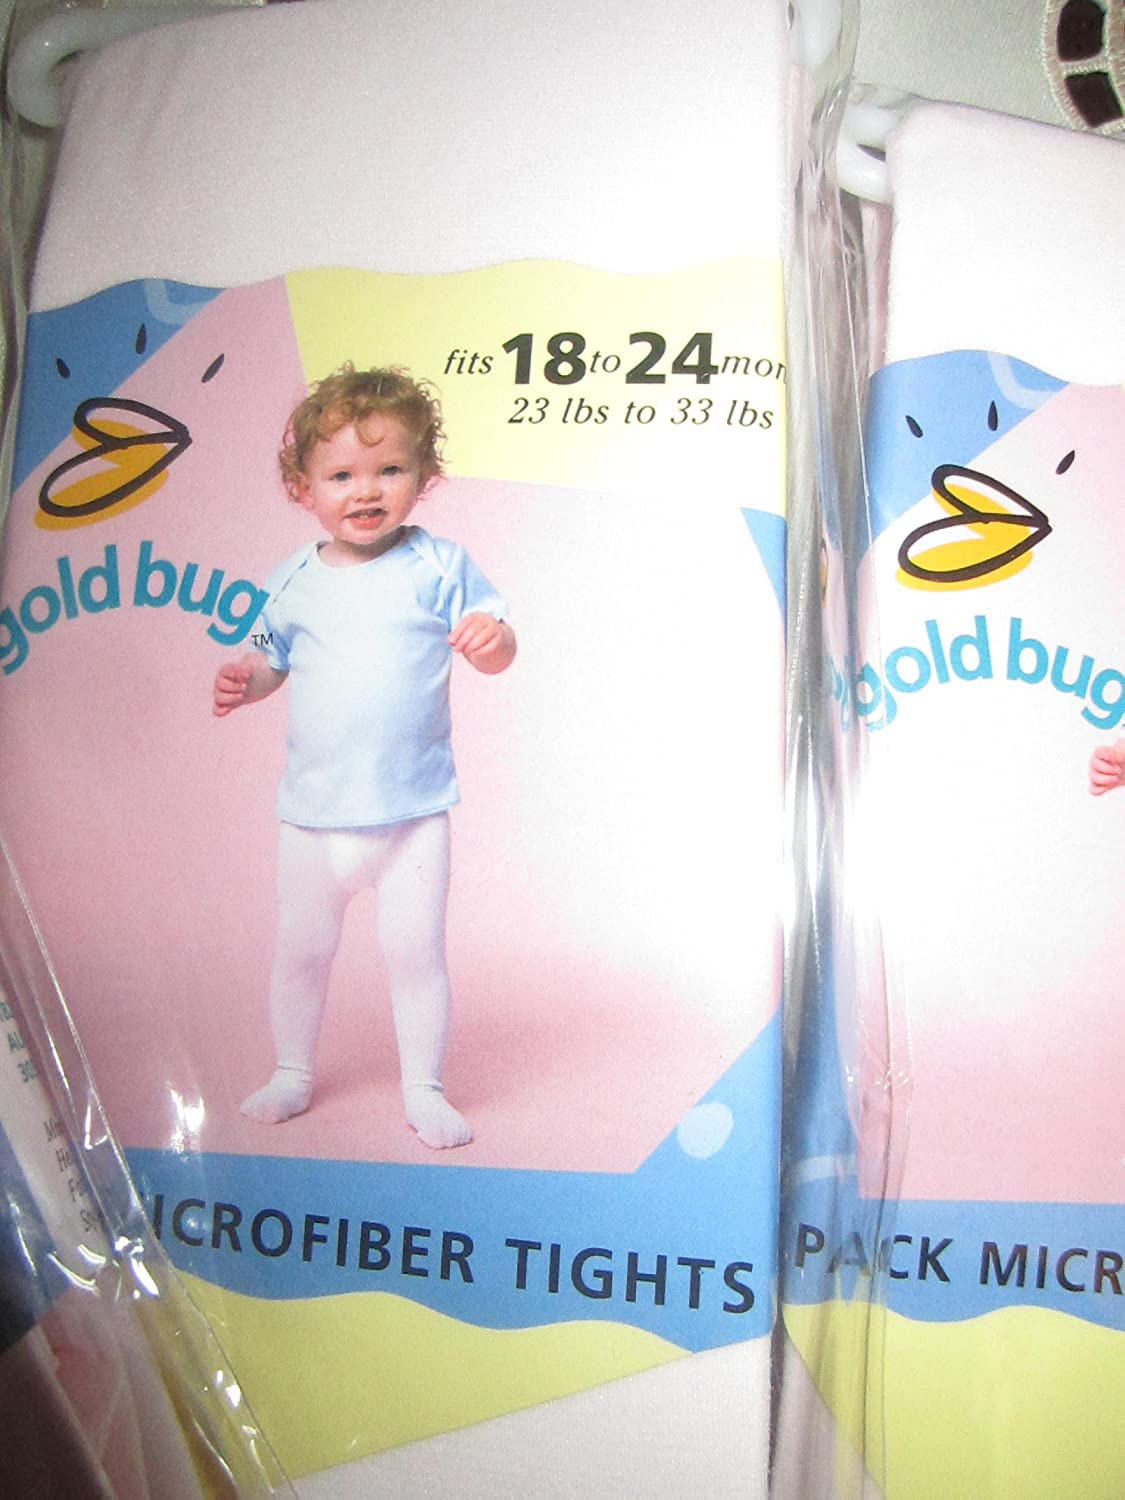 Gold Bug Baby Microfiber Tights Fits 18 to 24 Months